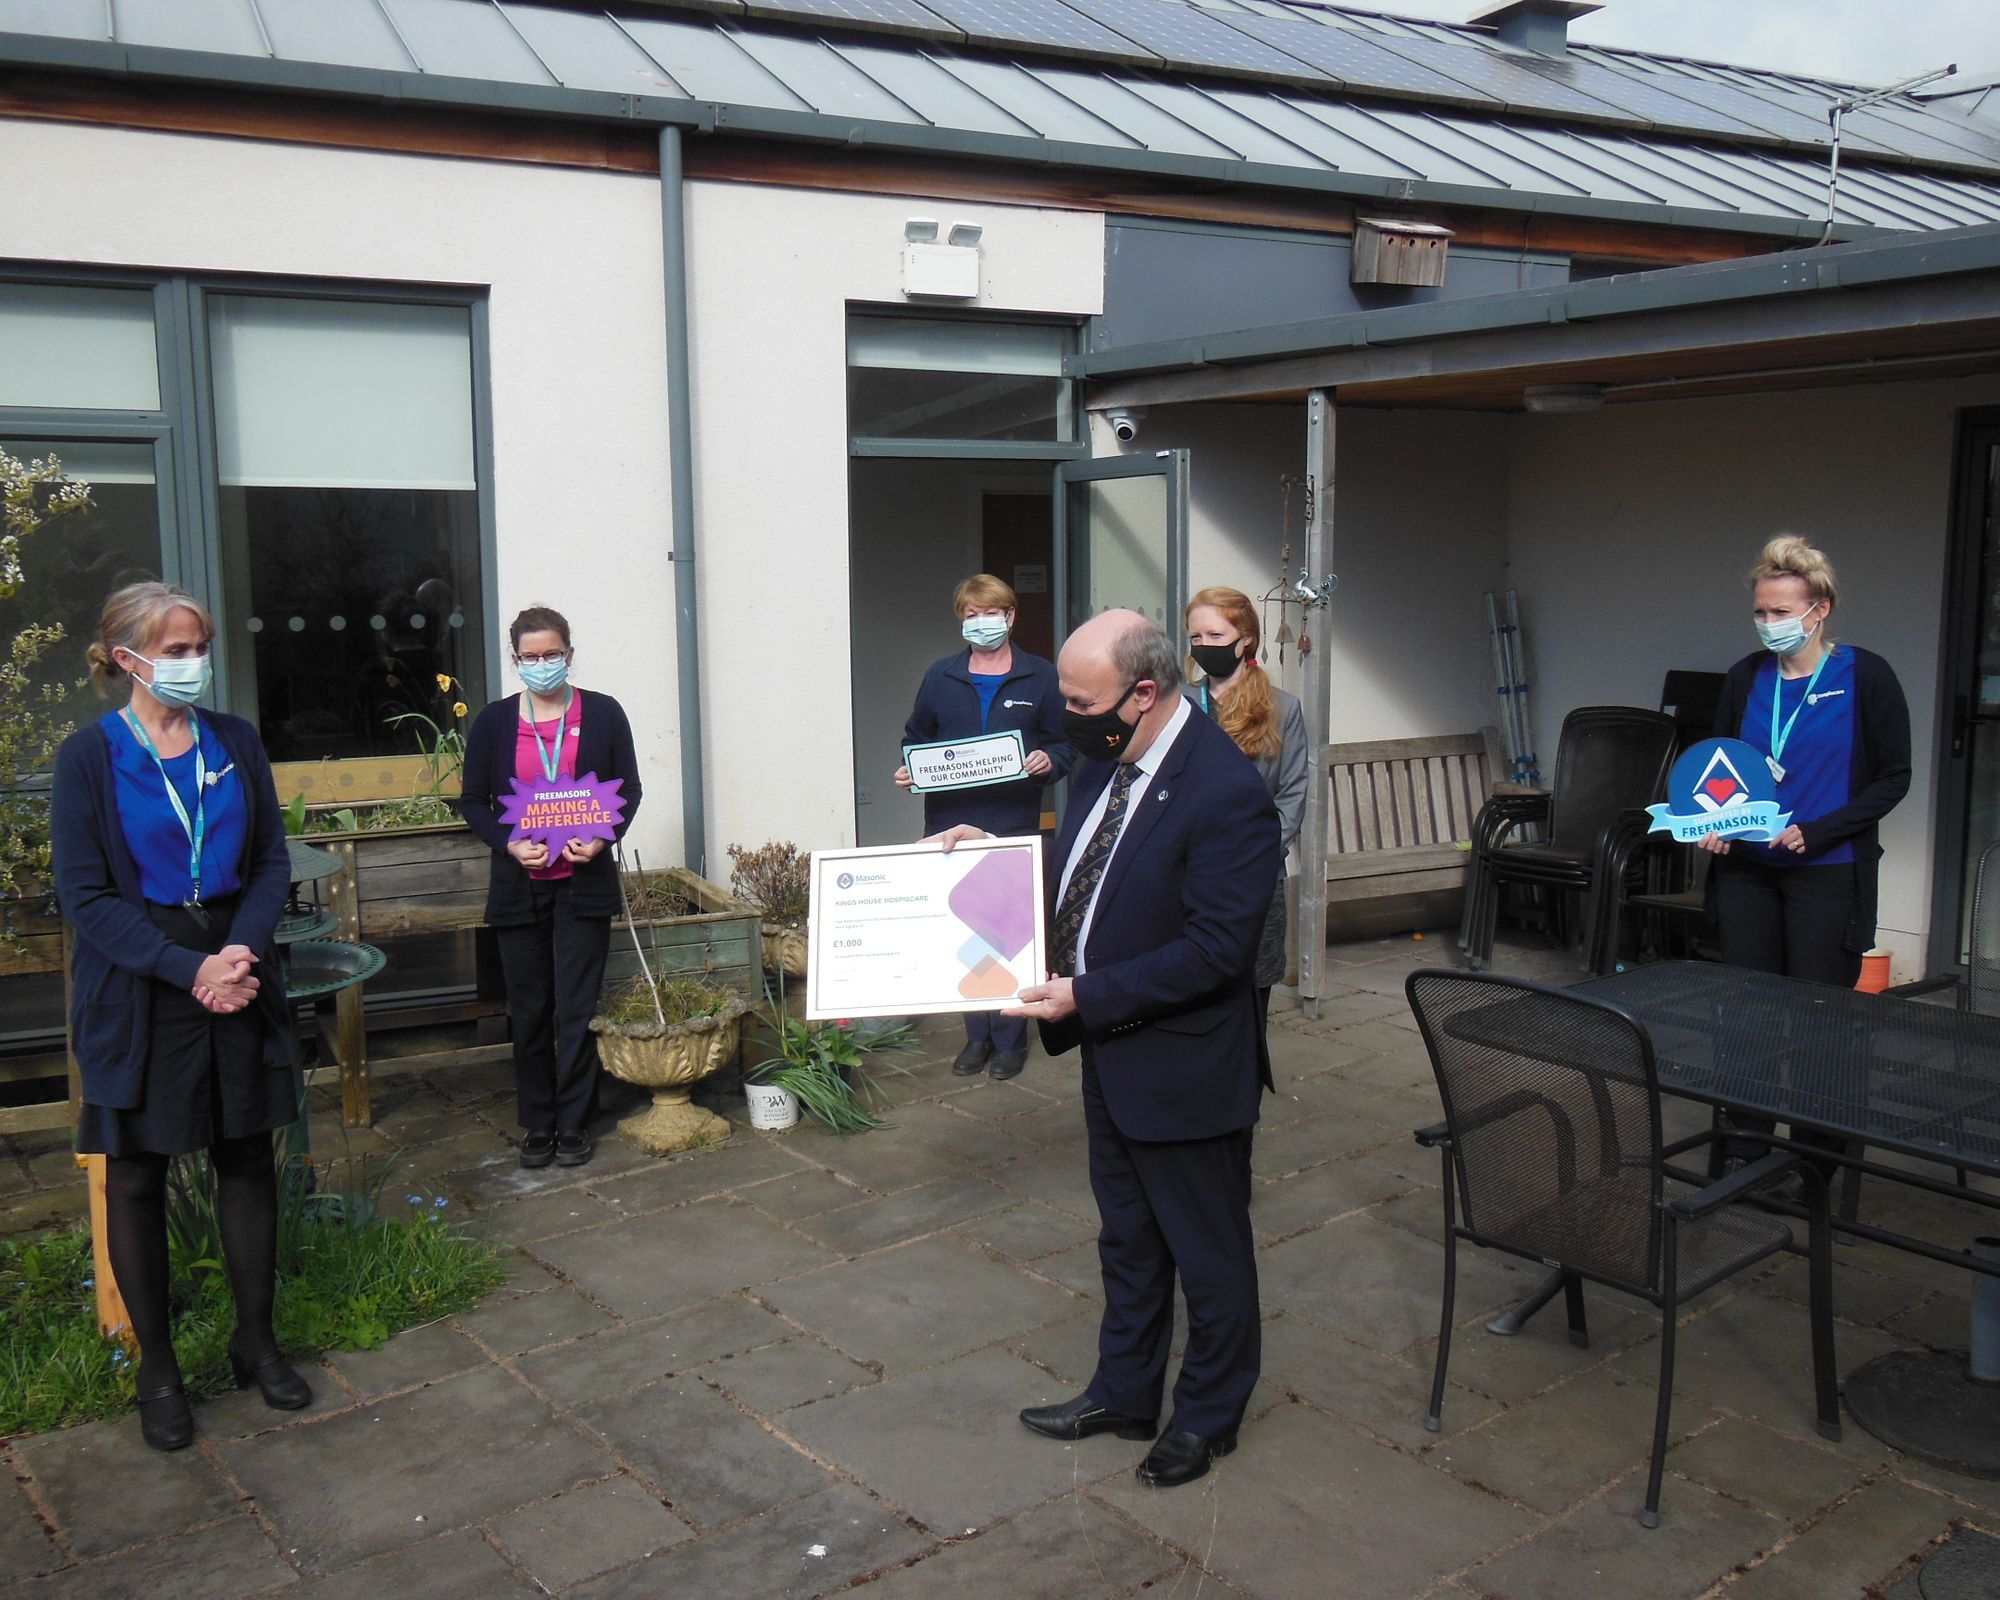 Devonshire/England - Freemasons donate £1,000 to Hospiscare's Kings House in Honiton